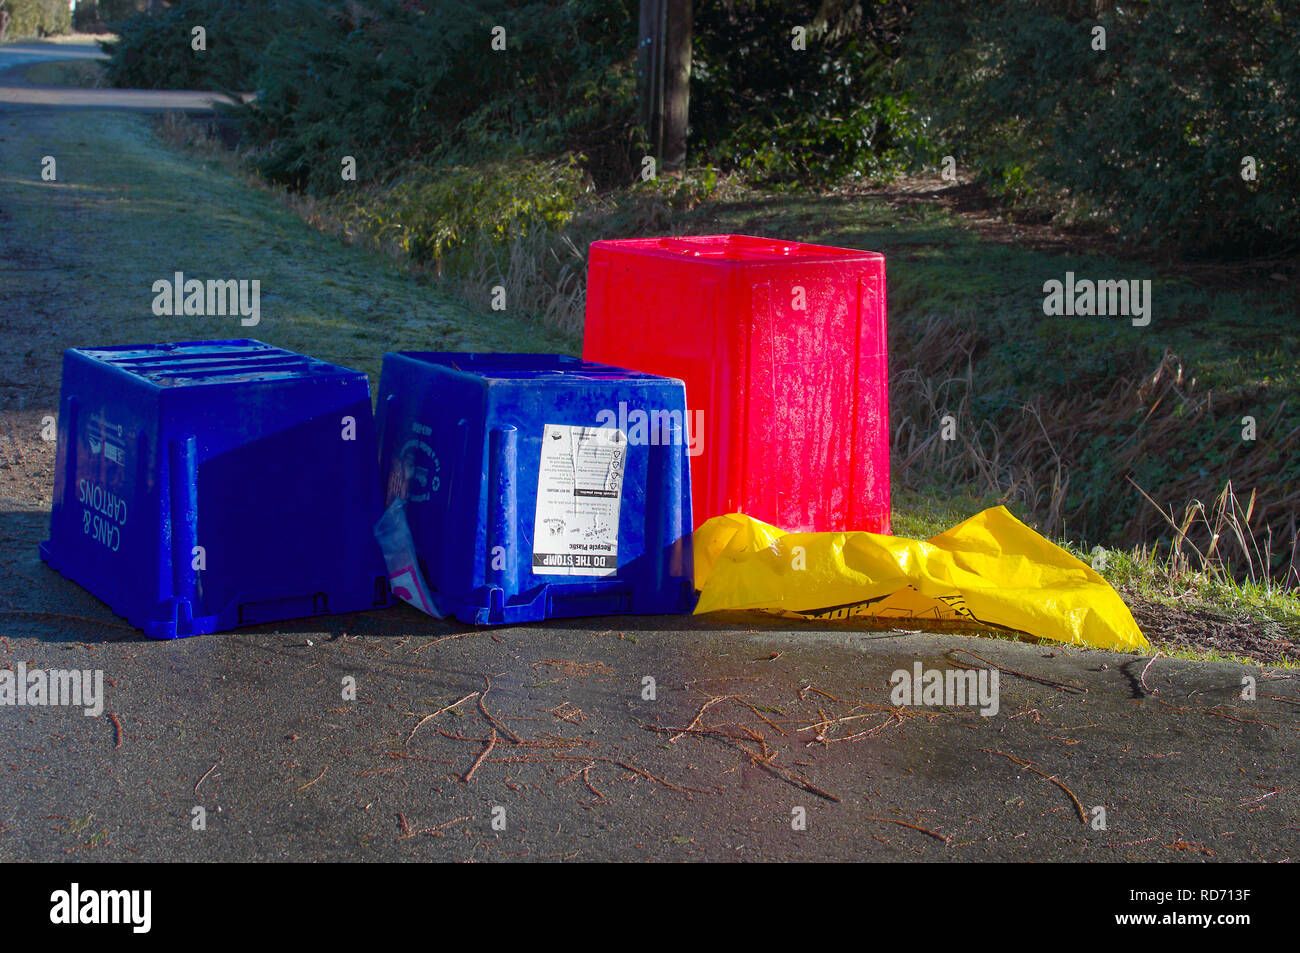 Empty upside down Blue Box recycling bins at curbside with a red bin for plastics and a yellow bag for cardboard. Stock Photo